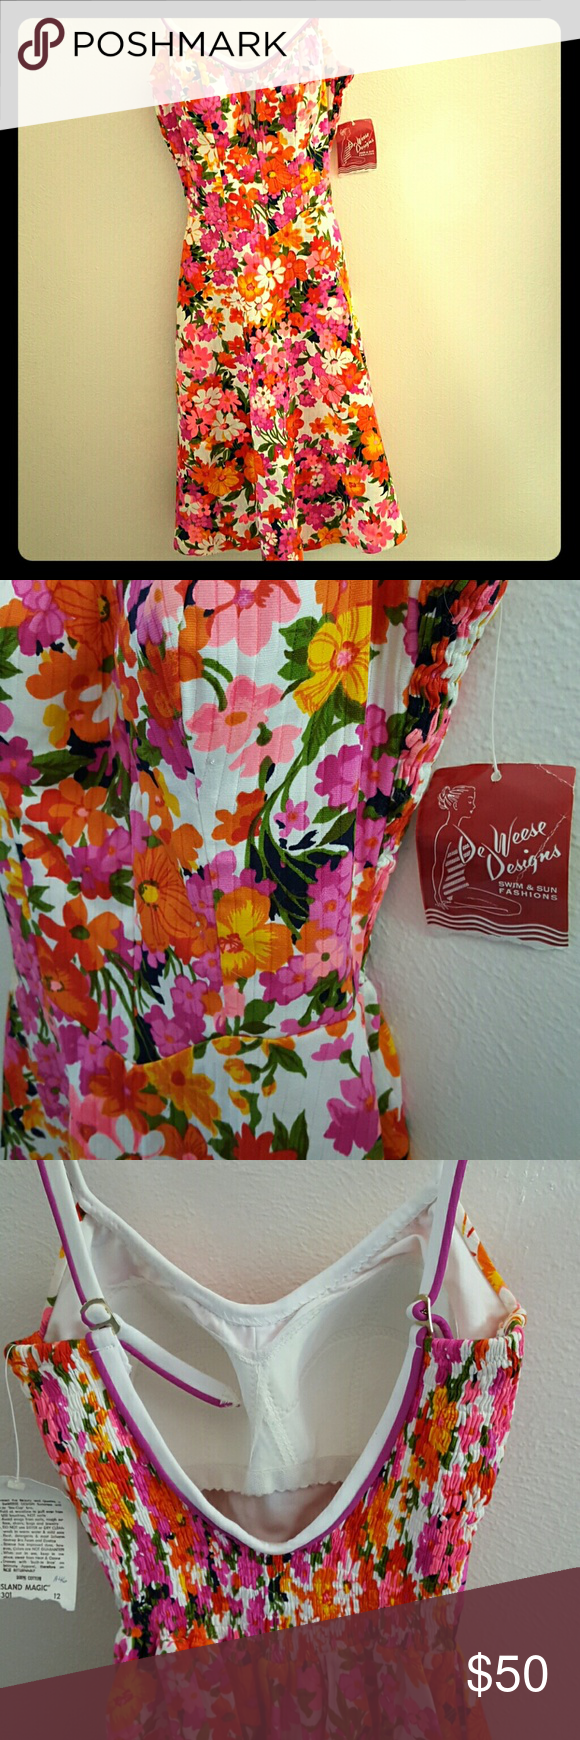 Vintage 'swimsuit' dress READ: vintage sizing shows this being closet to modern size 4! Tag reads 14/34  Made entirely of thick waterproof material, a swimsuit dress with no bottom. Maybe conventional swimsuits are not something you can wear anymore, or you want a universal poolside piece unlike anything I have seen. Really fun.   Elastic in VERY good condition considering it's age. Some small pinprick marks that are hard to see due to the pattern. Original tag. New old stock. deweese Swim…